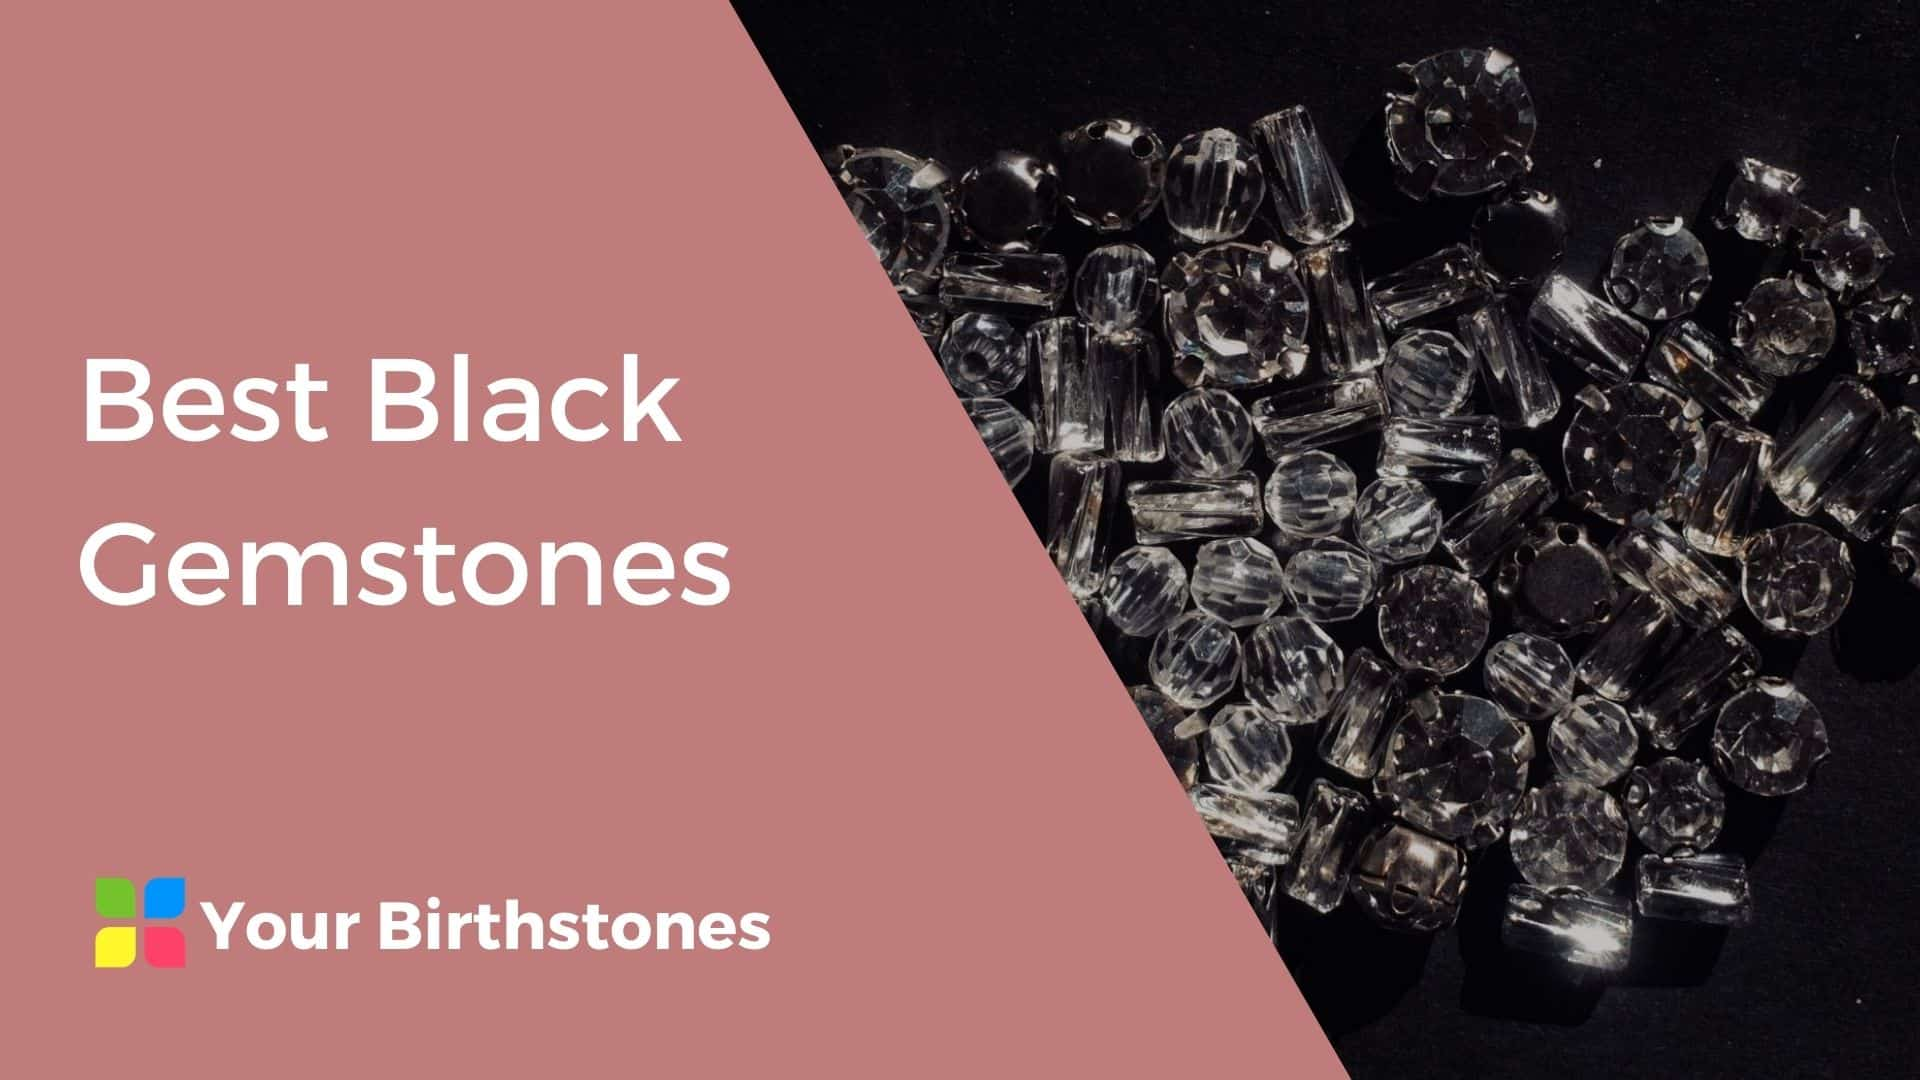 Best Black Gemstones